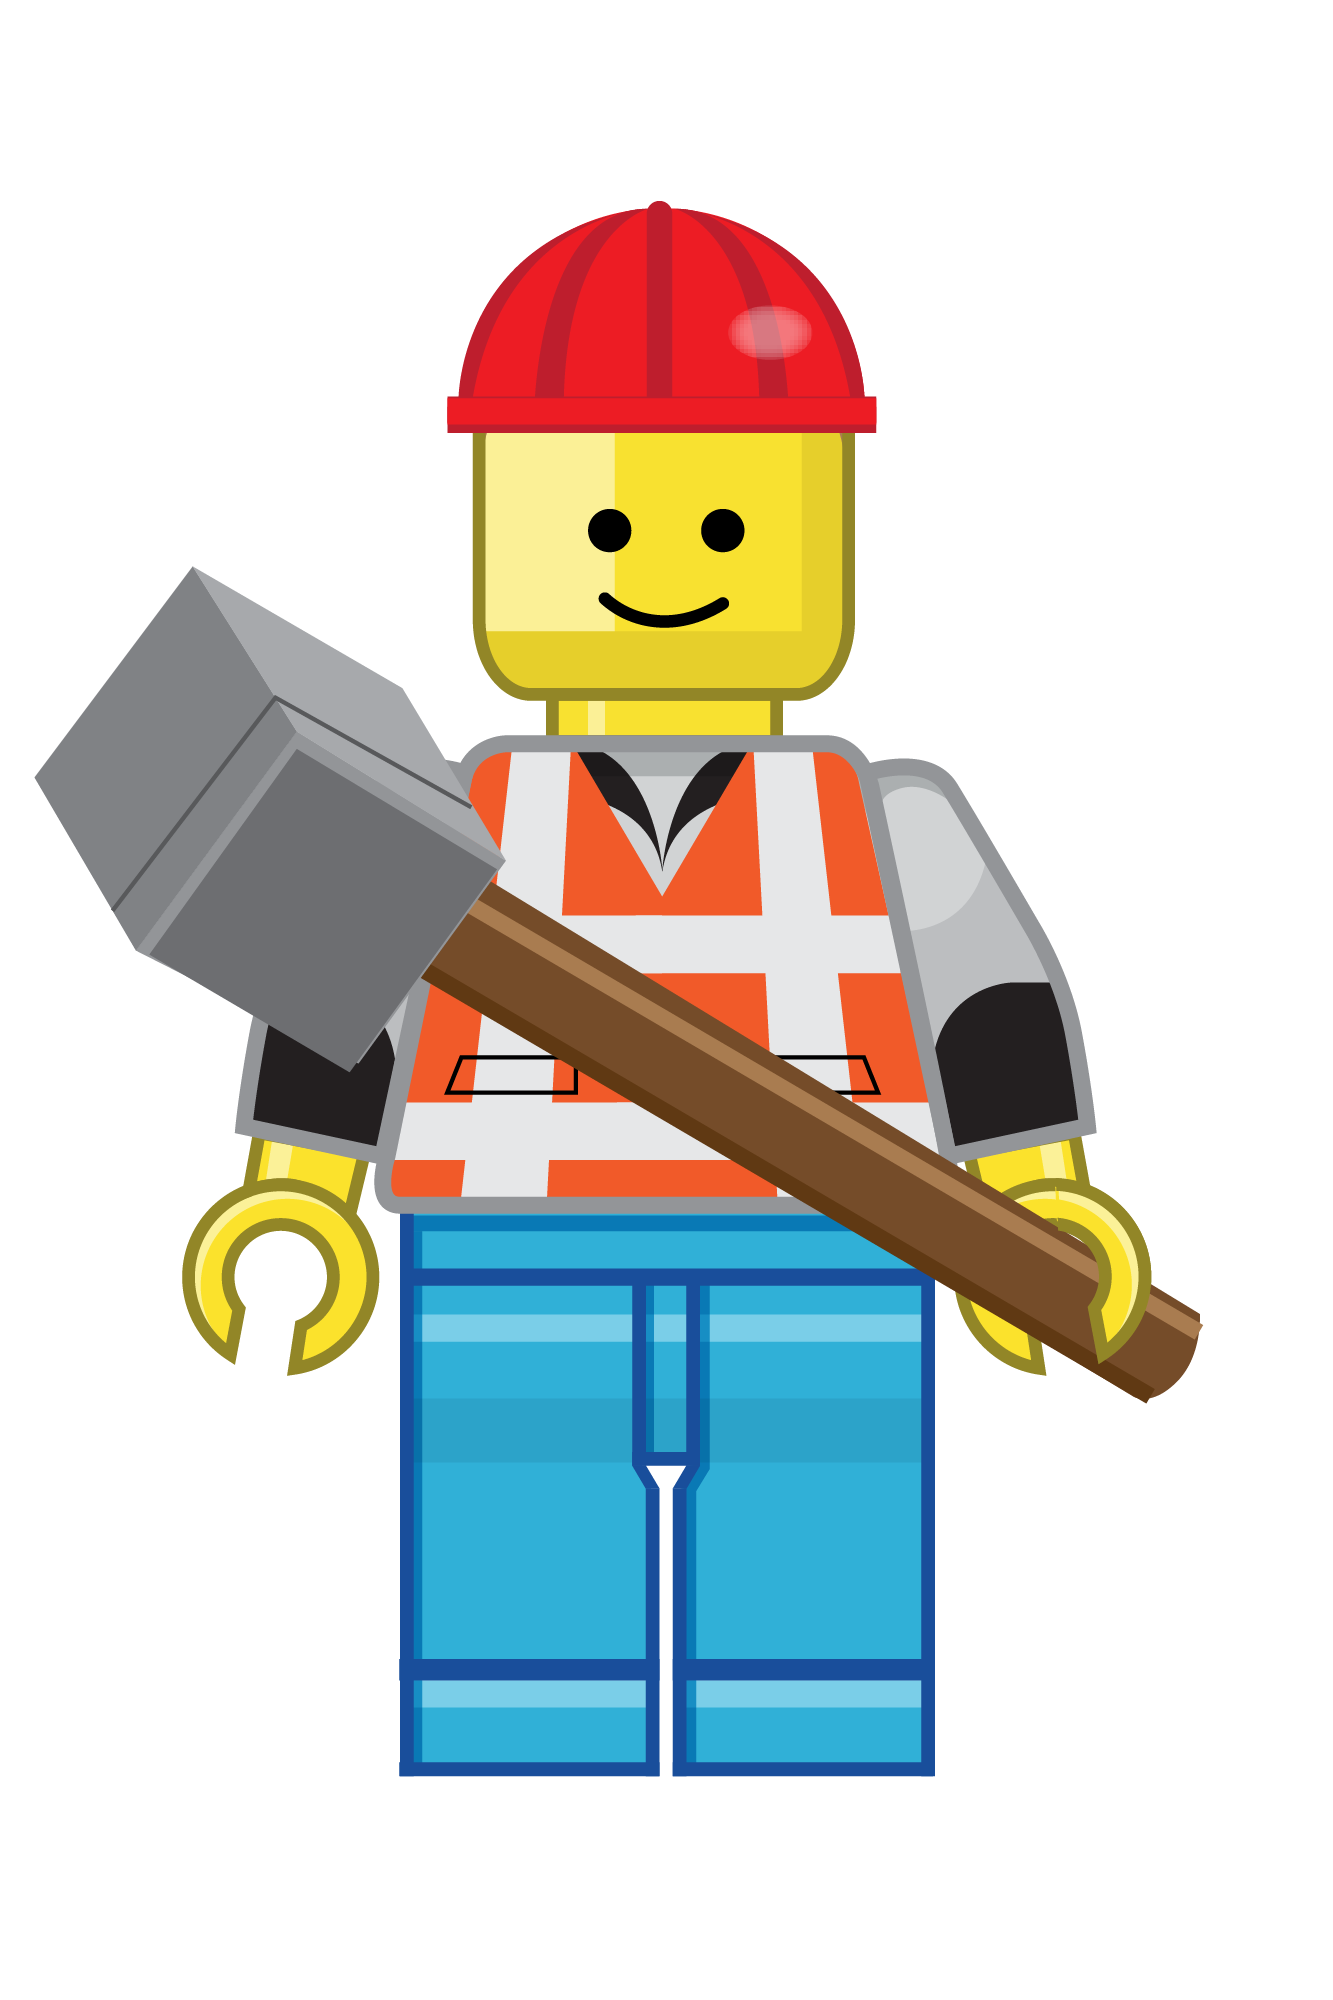 bITD_lego_B1 construction.png